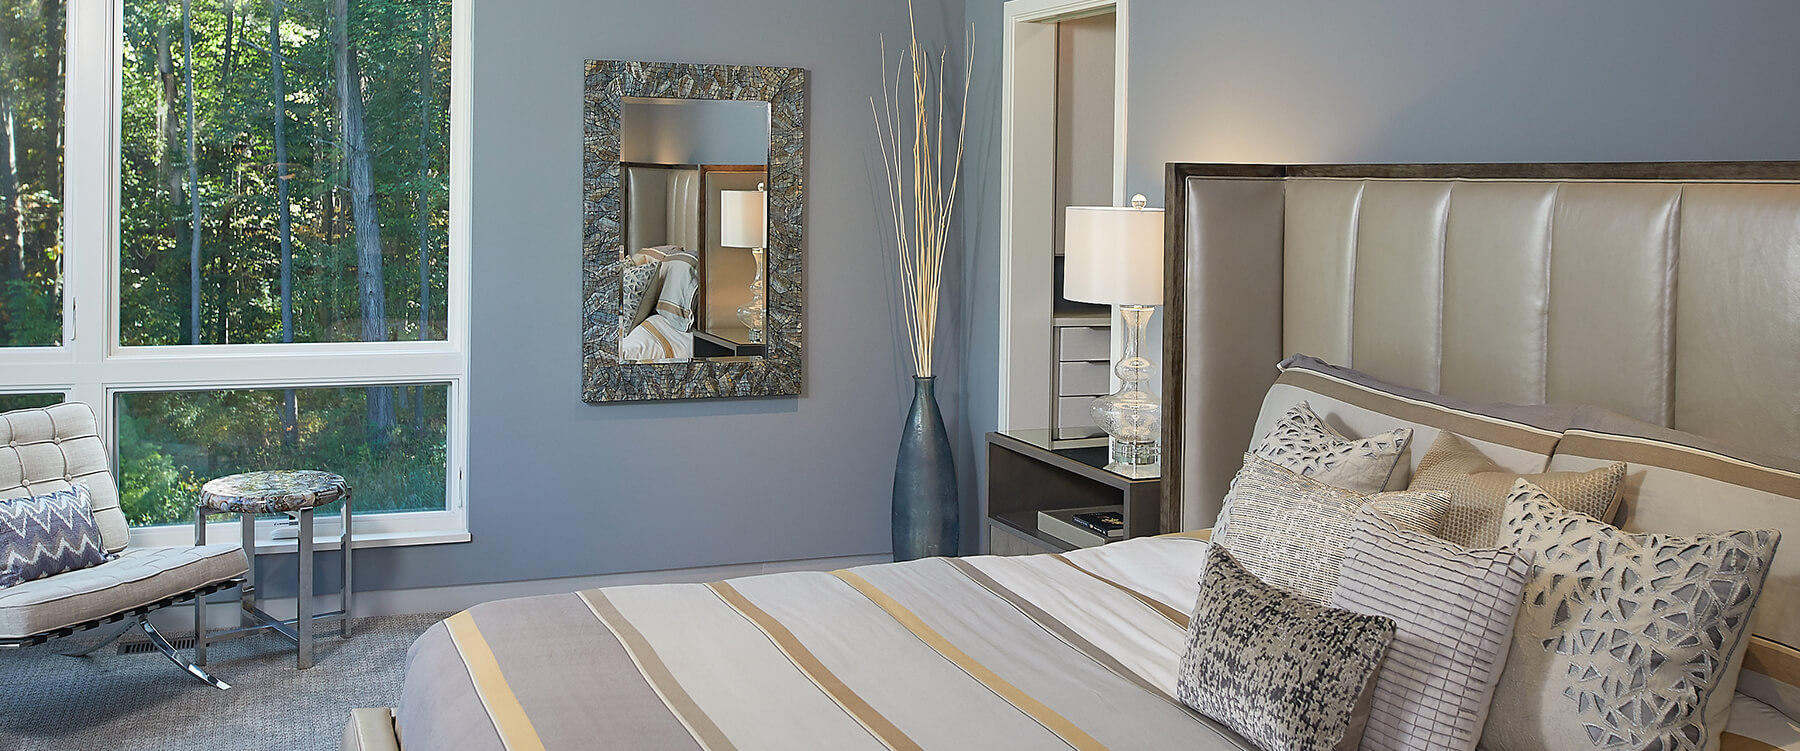 Modern home in the woods interior bedroom